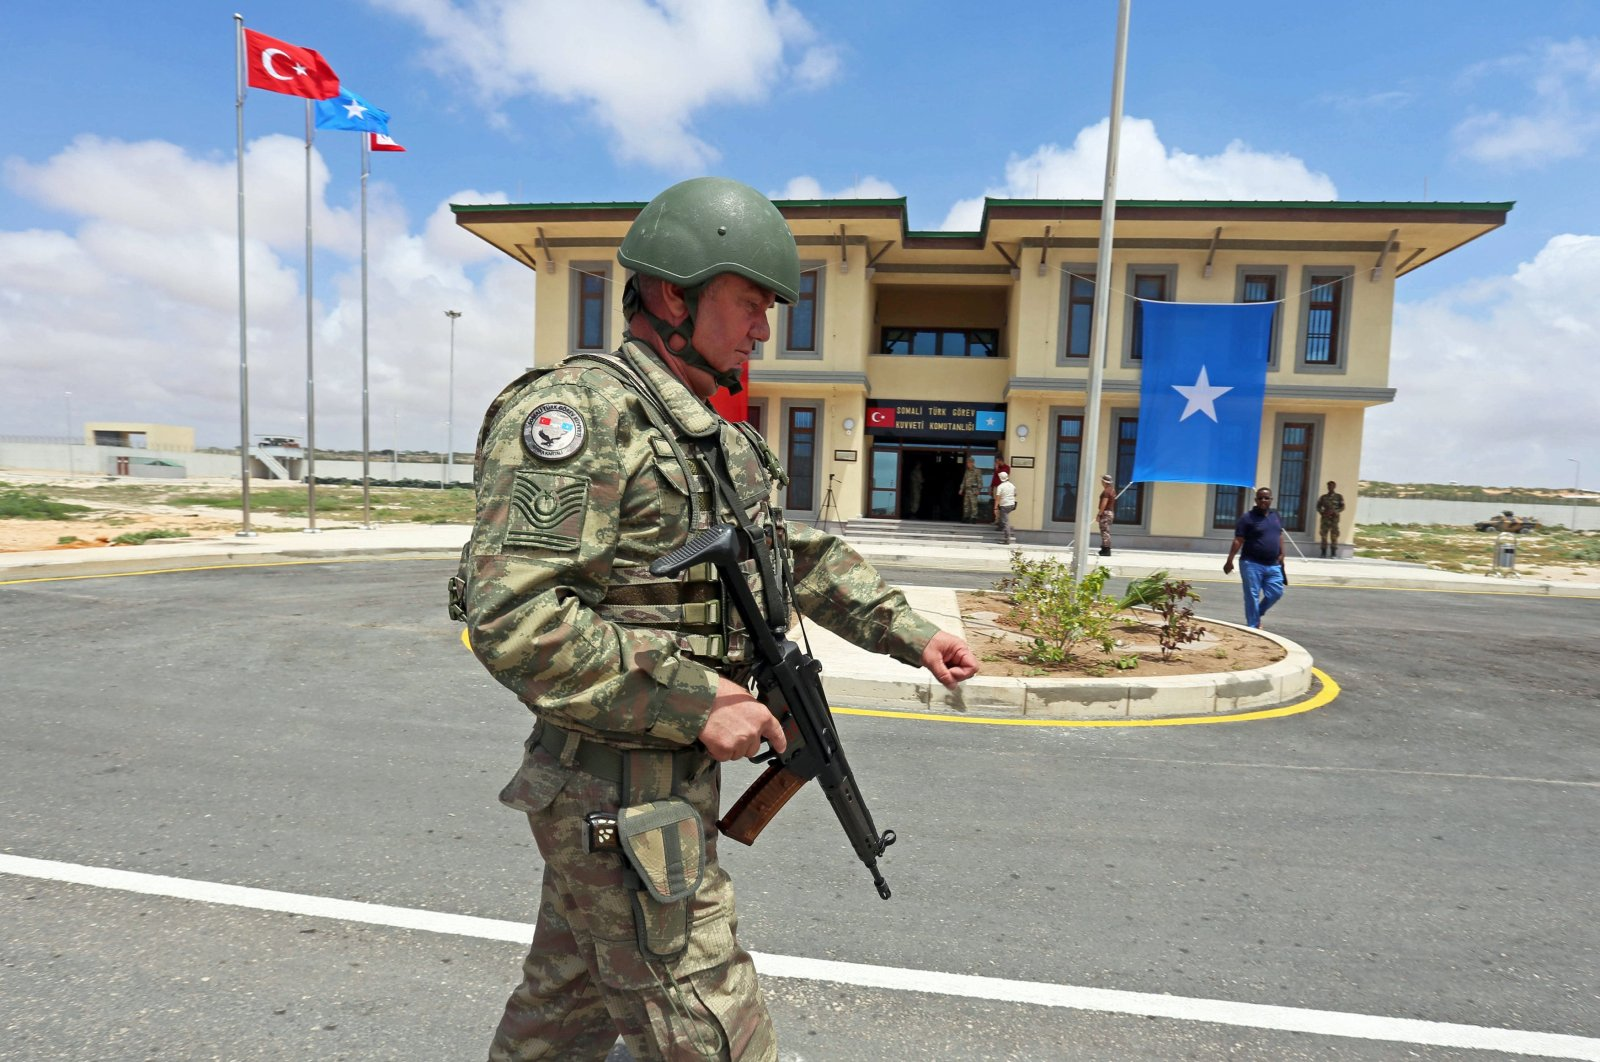 A Turkish soldier is seen on patrol at Camp TURKSOM military training base in Somalia's capital Mogadishu in this undated photo. (AA Photo)